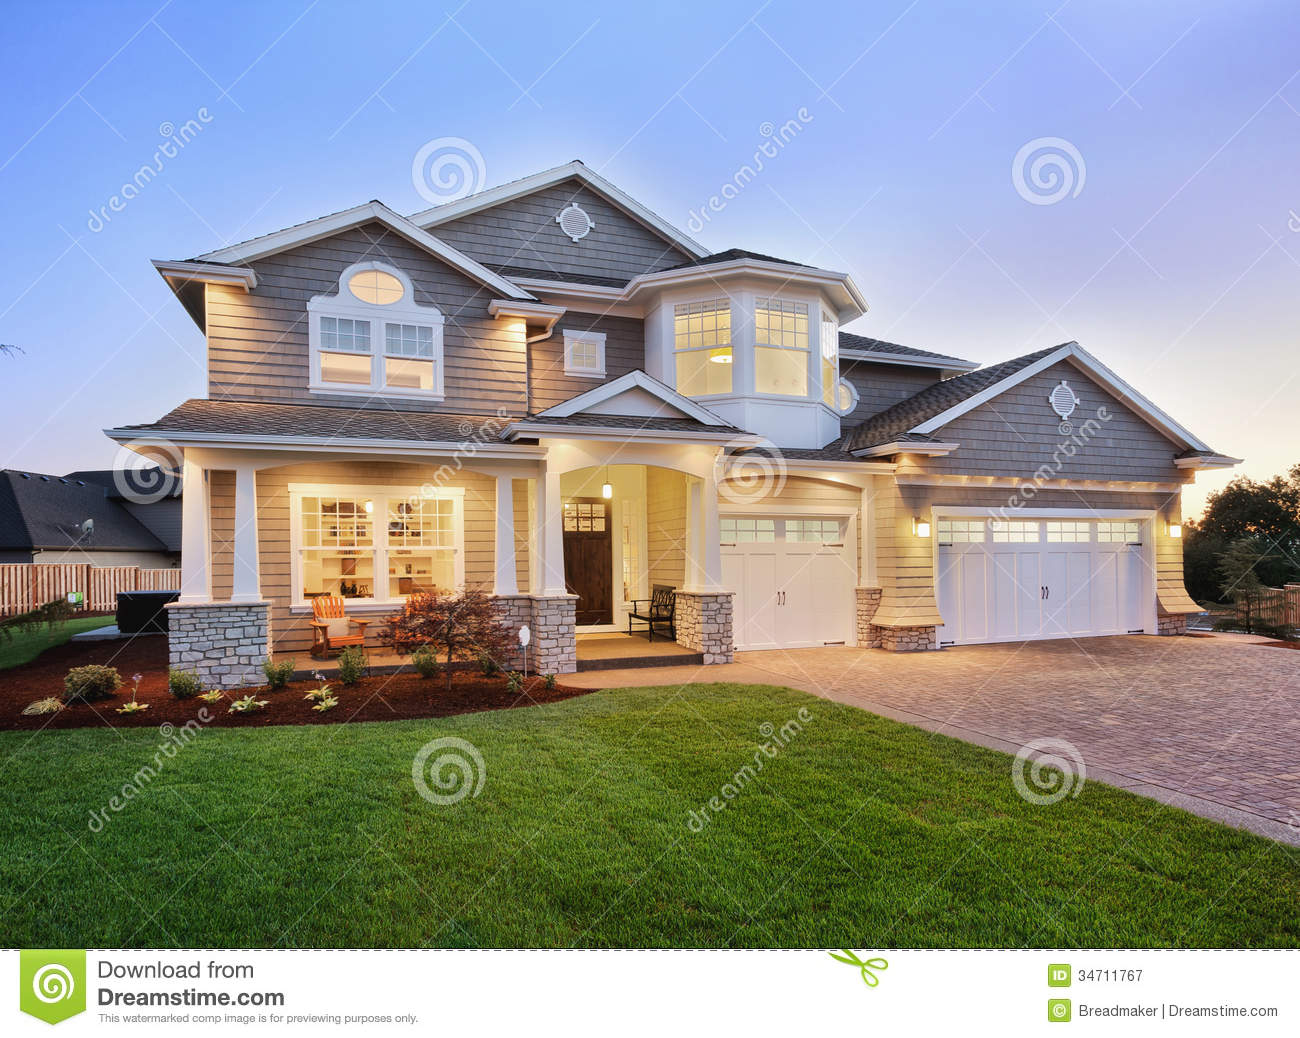 beautiful new home exterior - Home Exterior